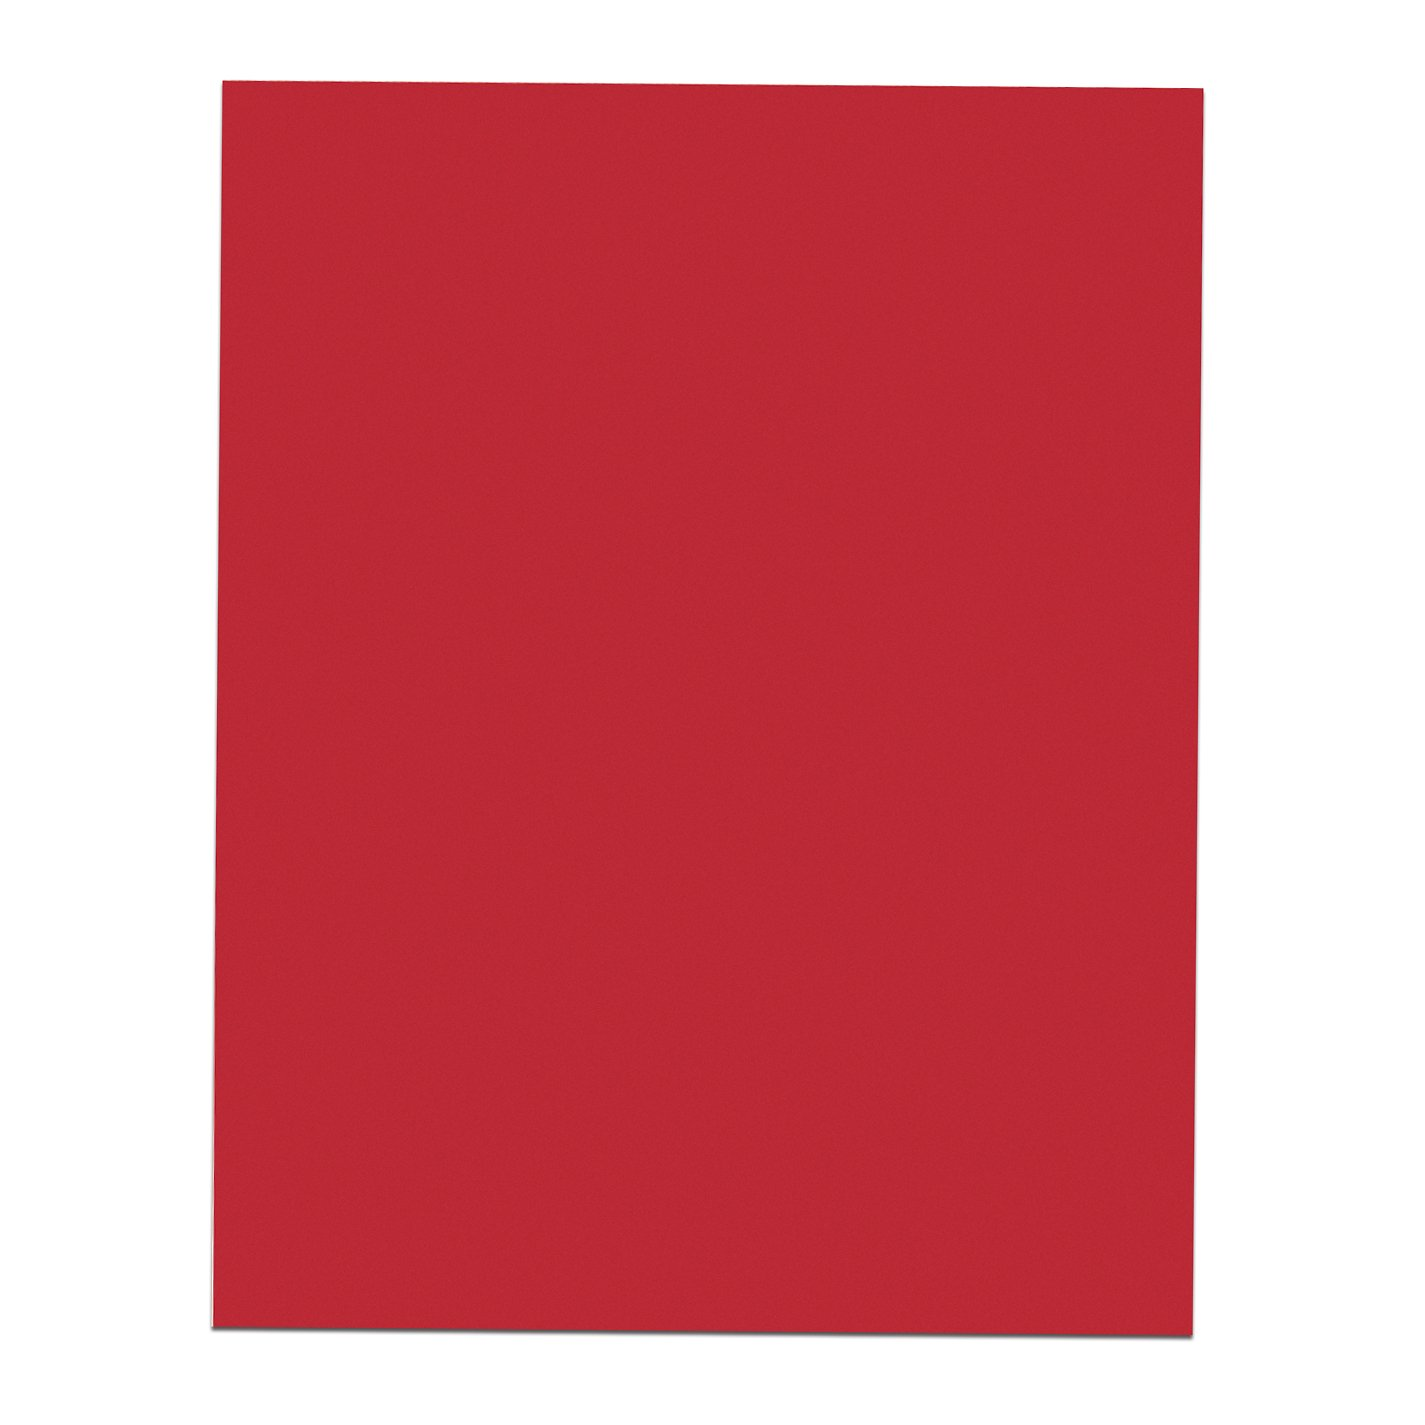 Roaring Spring Red Poster Board, 22'' x 28'', 25 sheets per carton-Sold by the carton